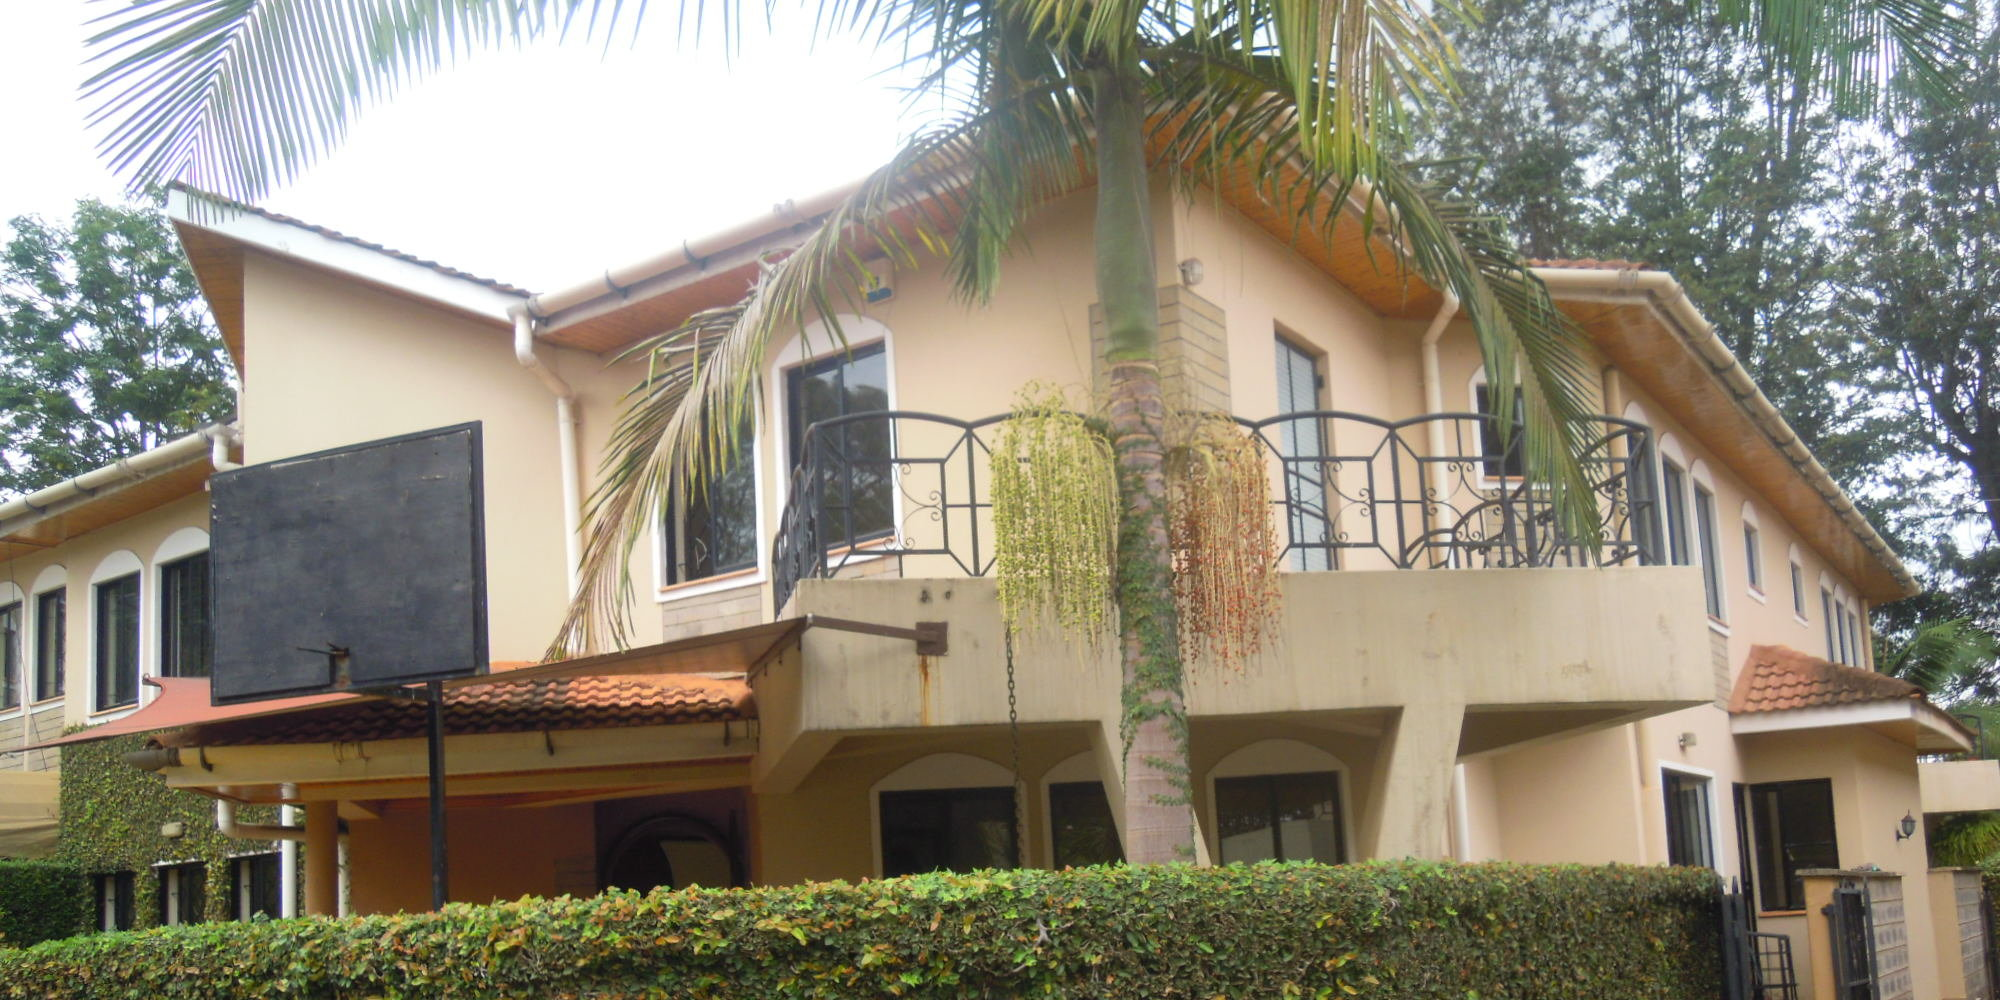 Lavington: 5BR Townhouse.-For Sale